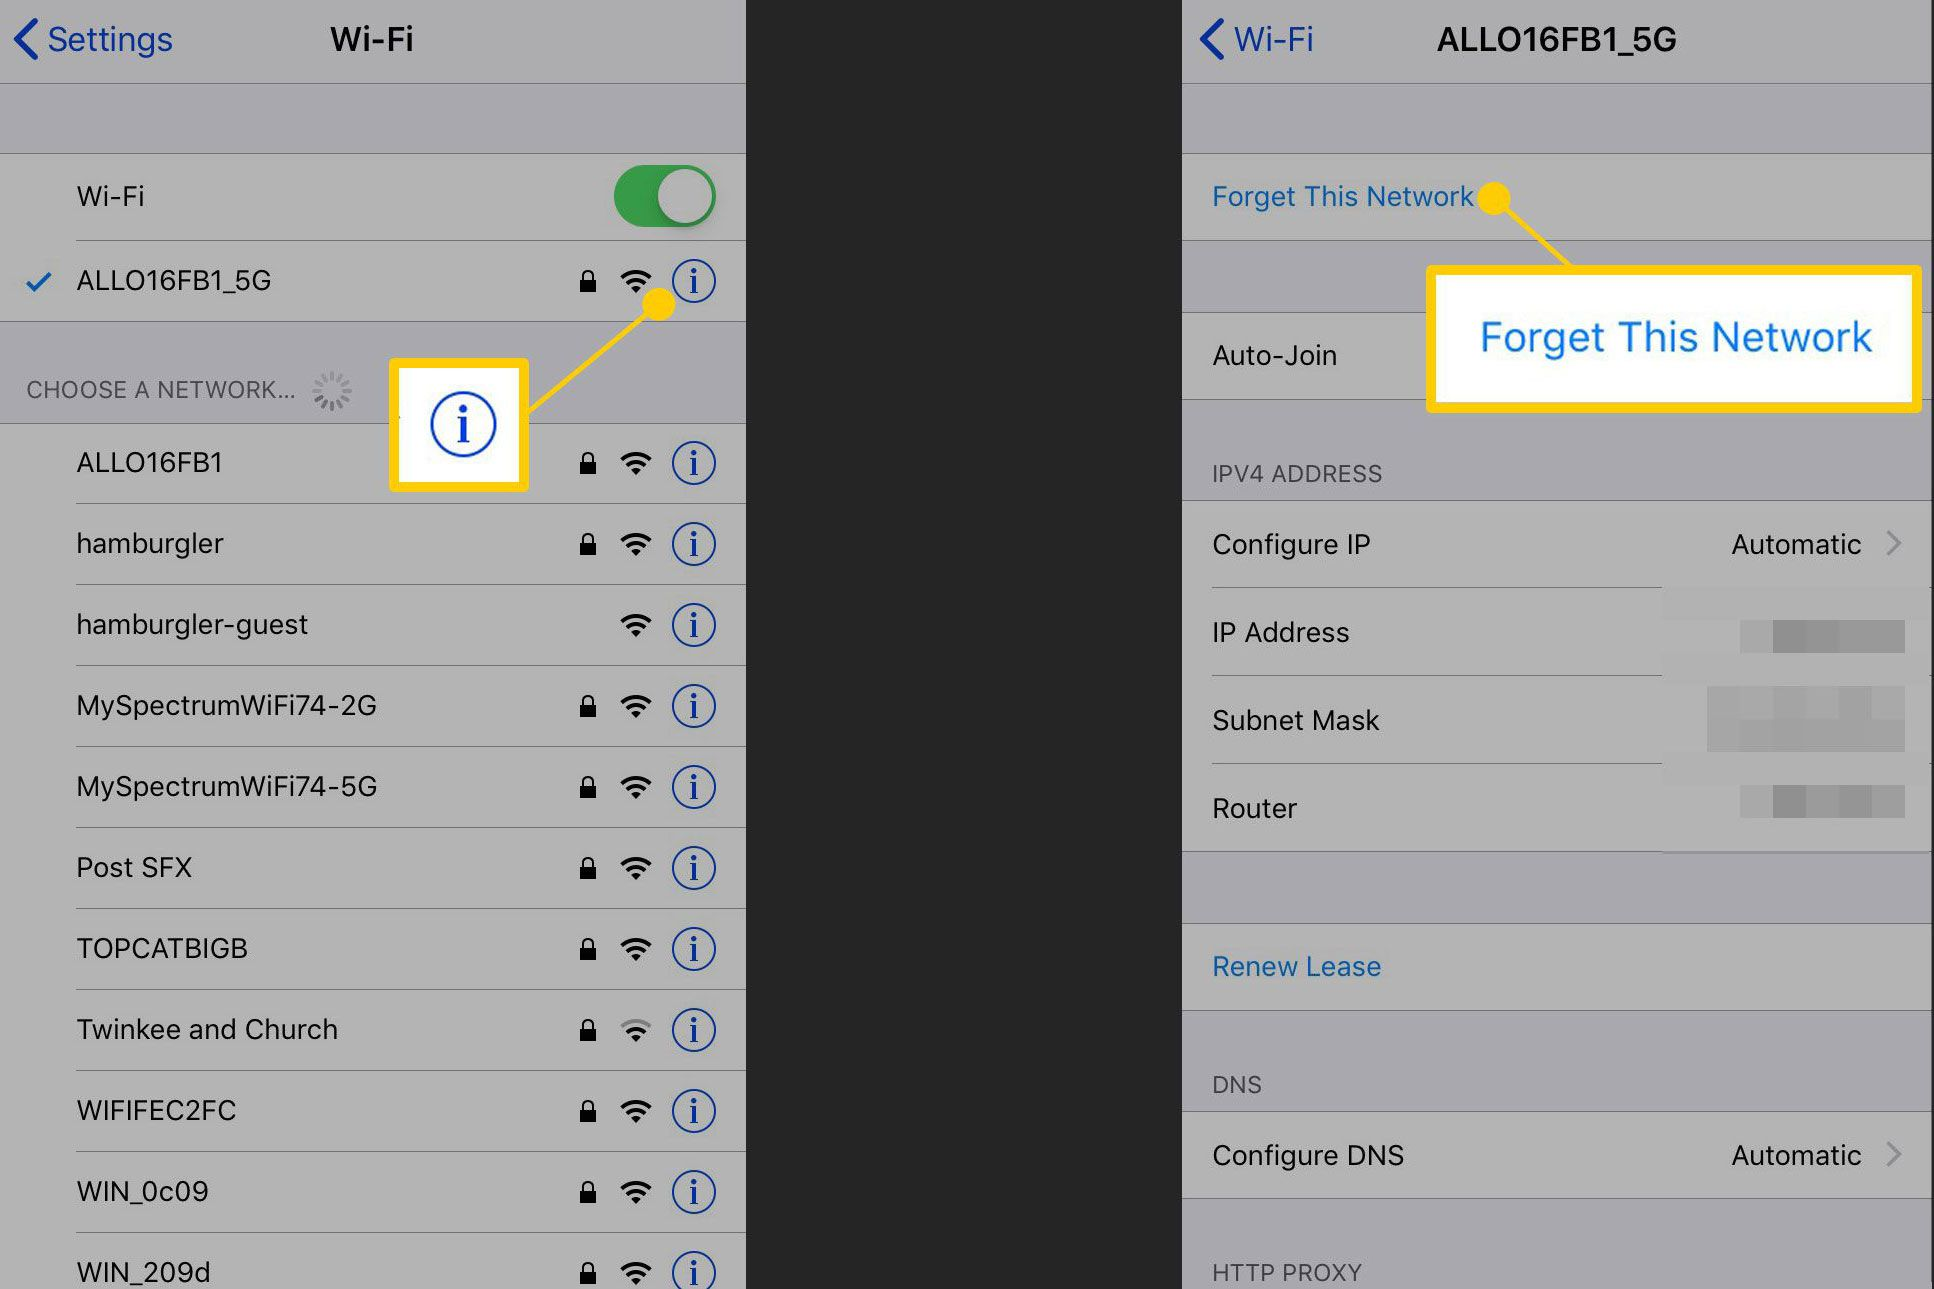 Screenshots of an iPhone showing the Wi-Fi info icon and the Forget This Network command